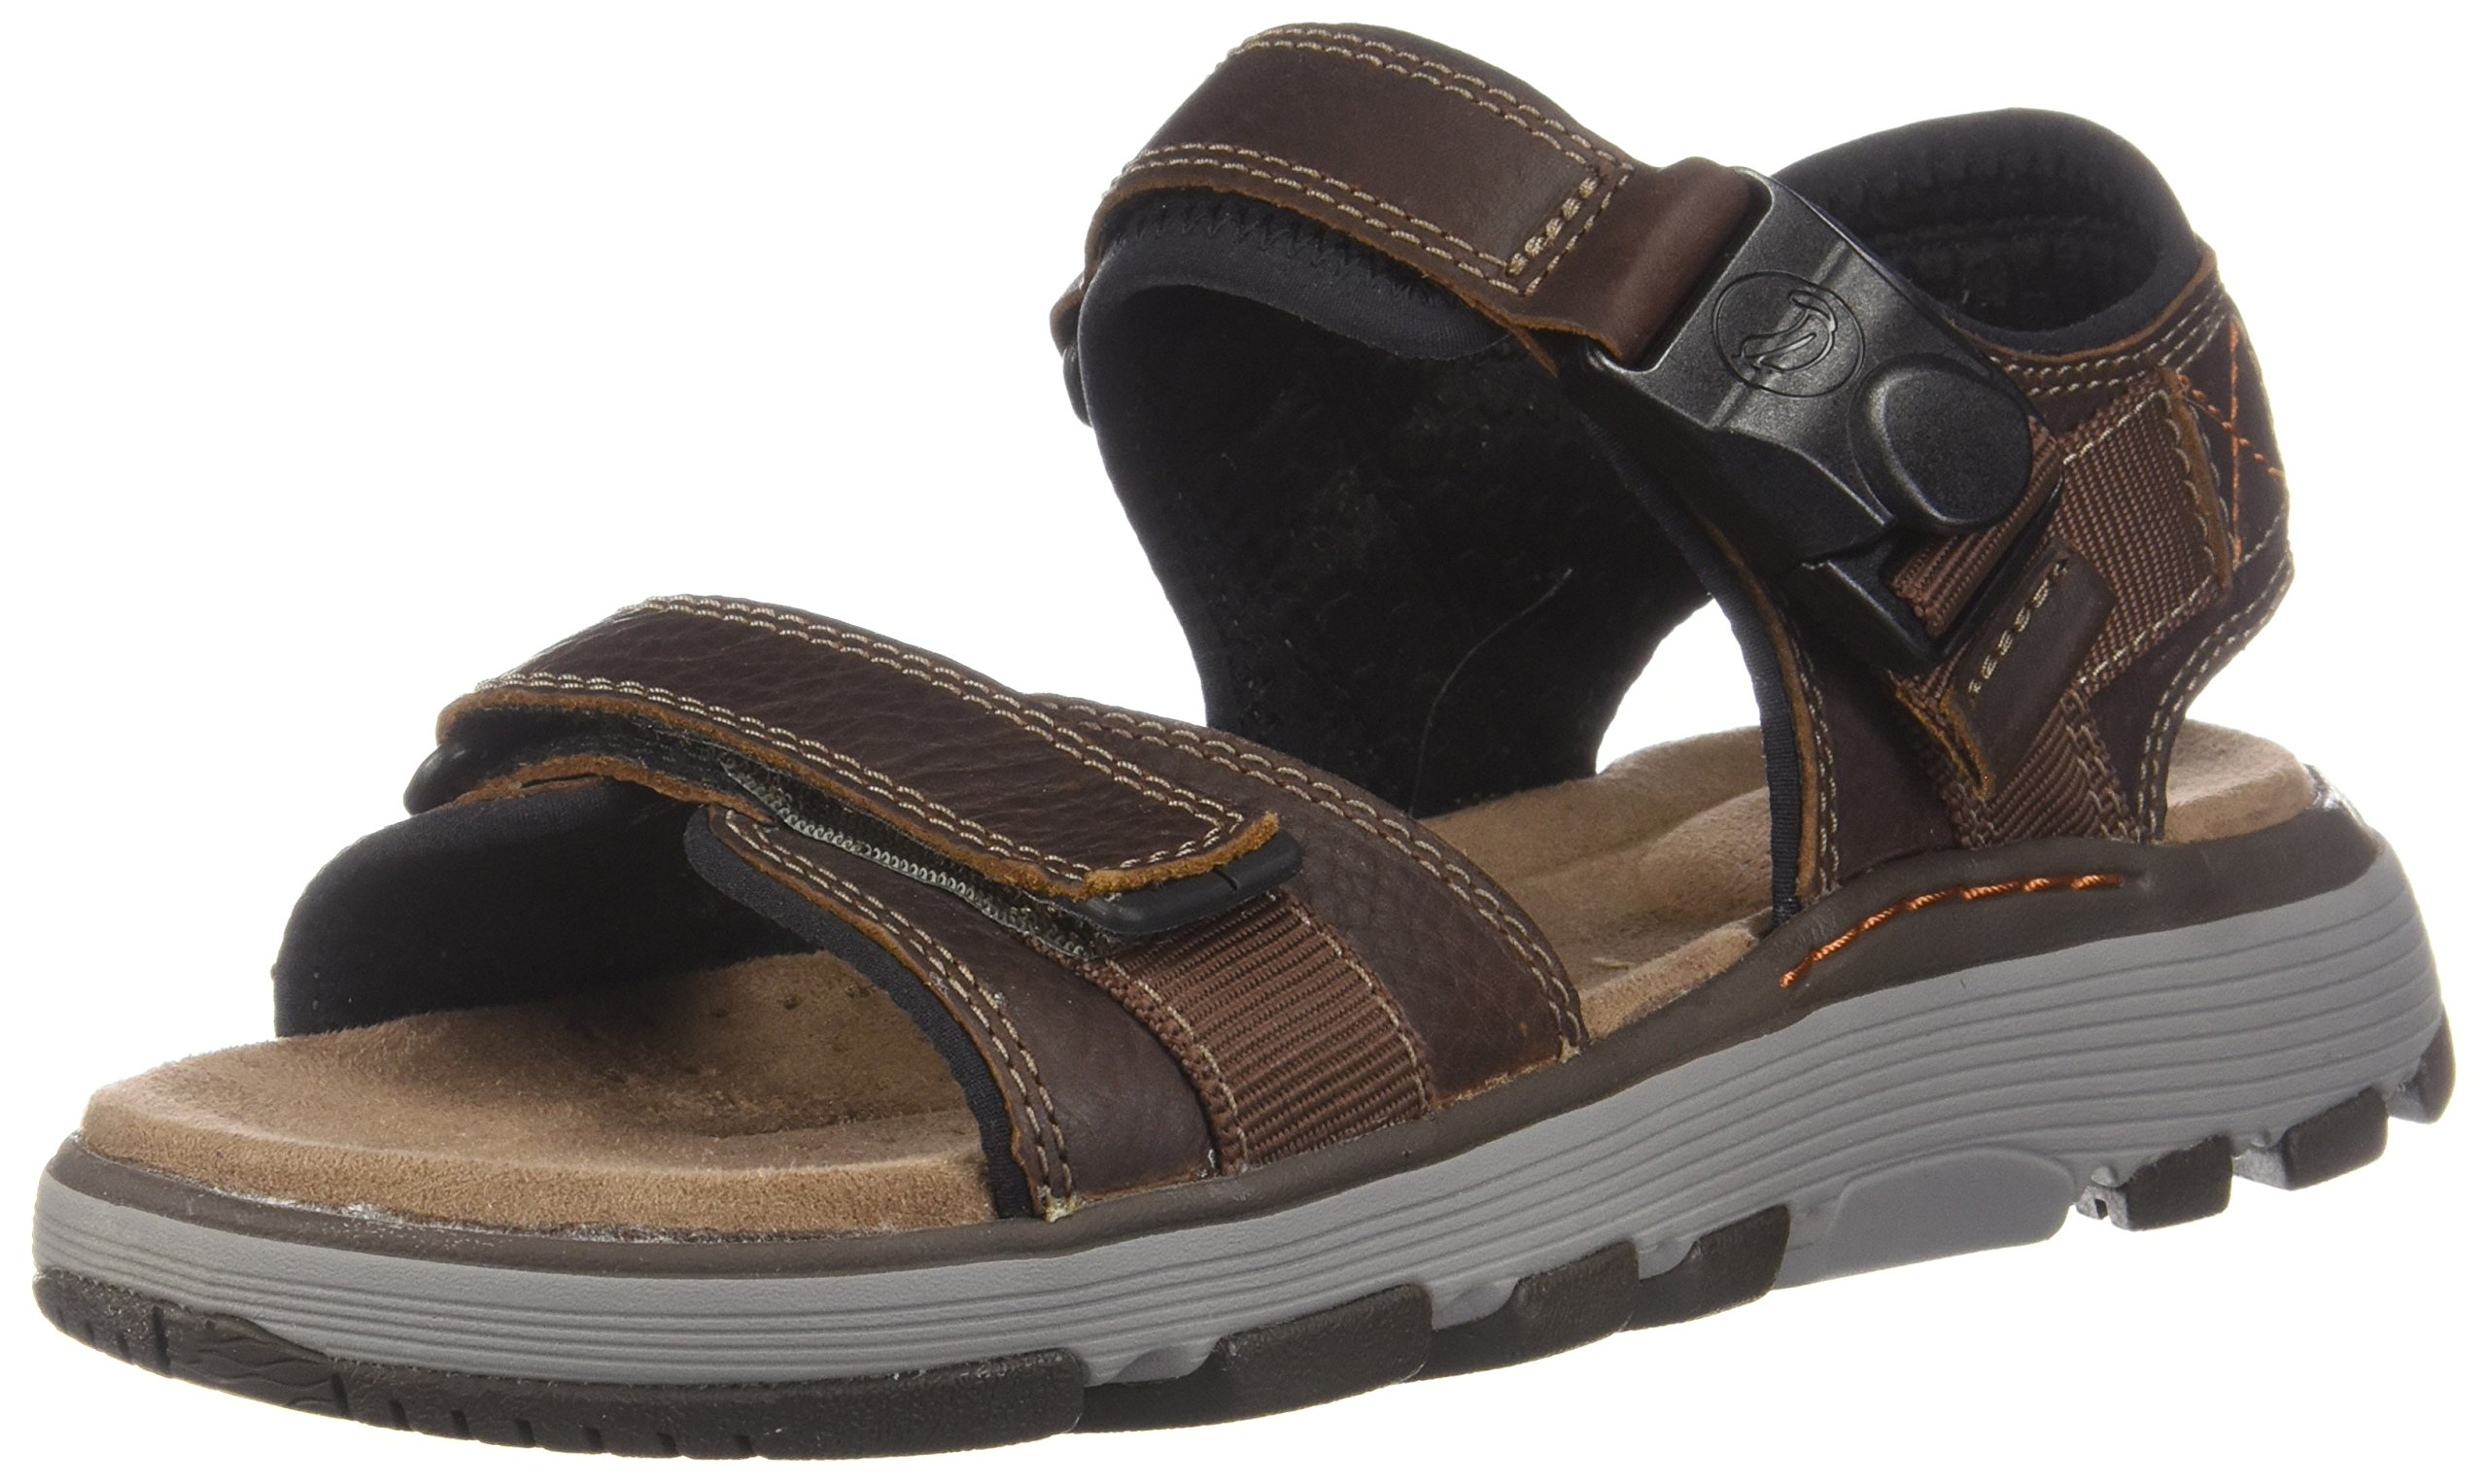 05fc3b666619 Galleon - CLARKS Mens Un Trek Part Casual Shoe